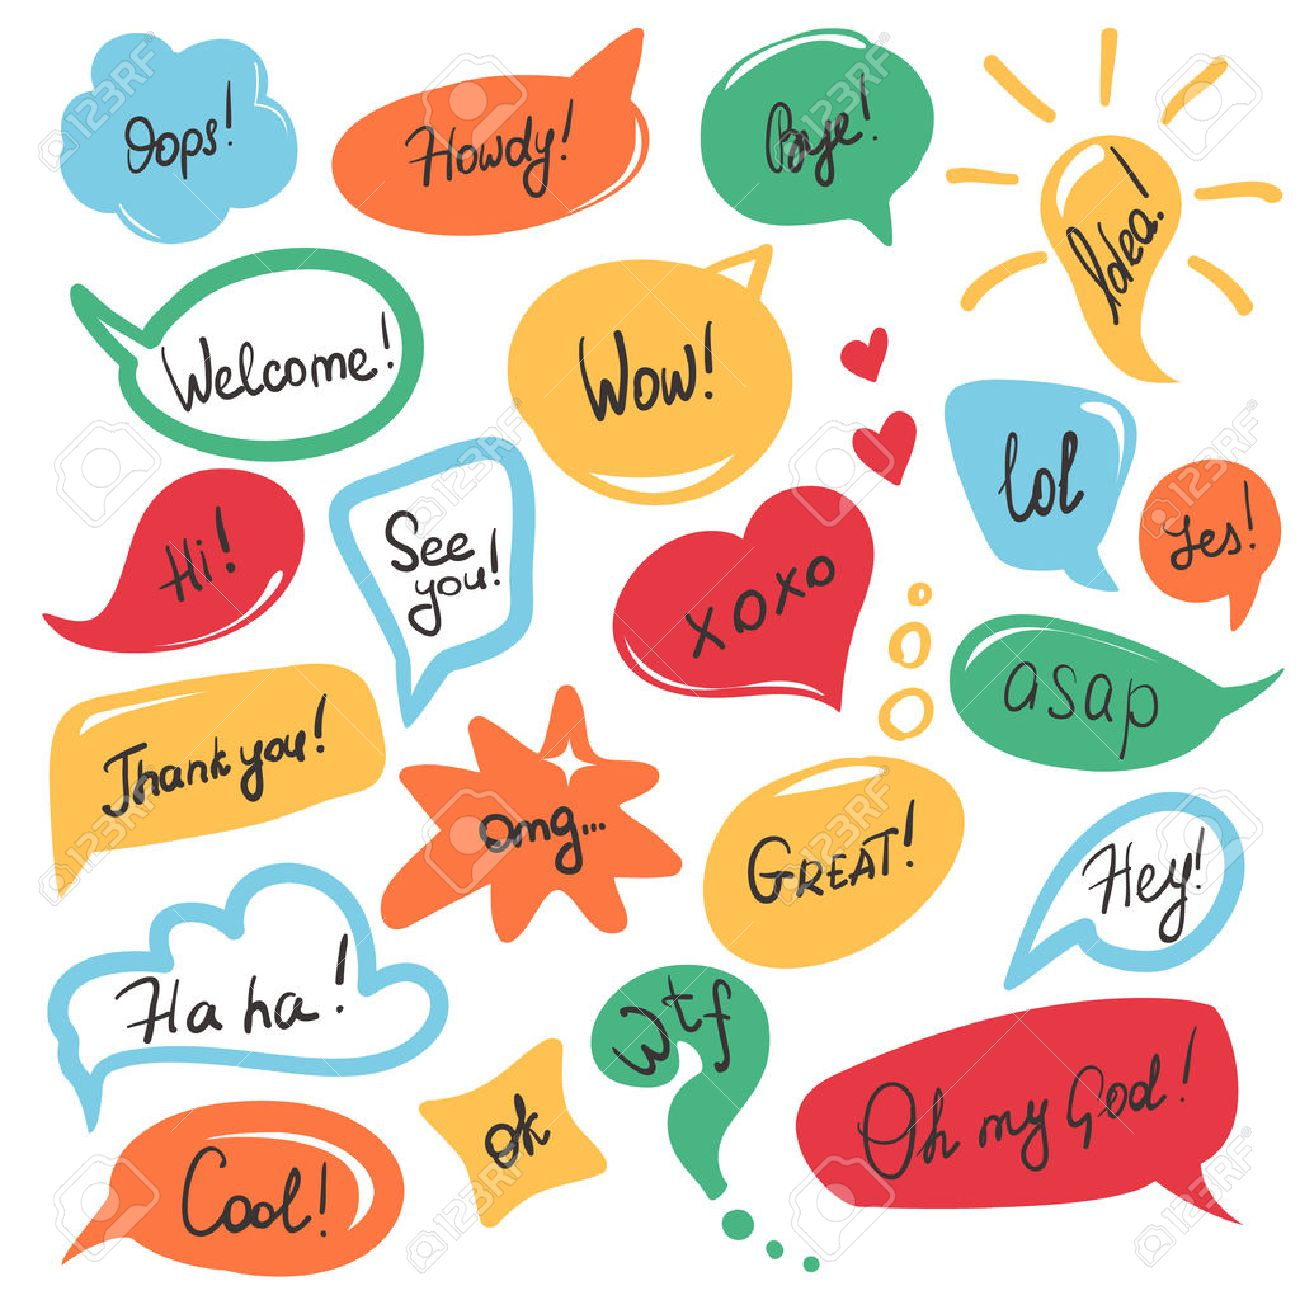 Hand drawn speech bubbles and stickers set with handwritten short messages and friendly phrases isolated on white - 48959327